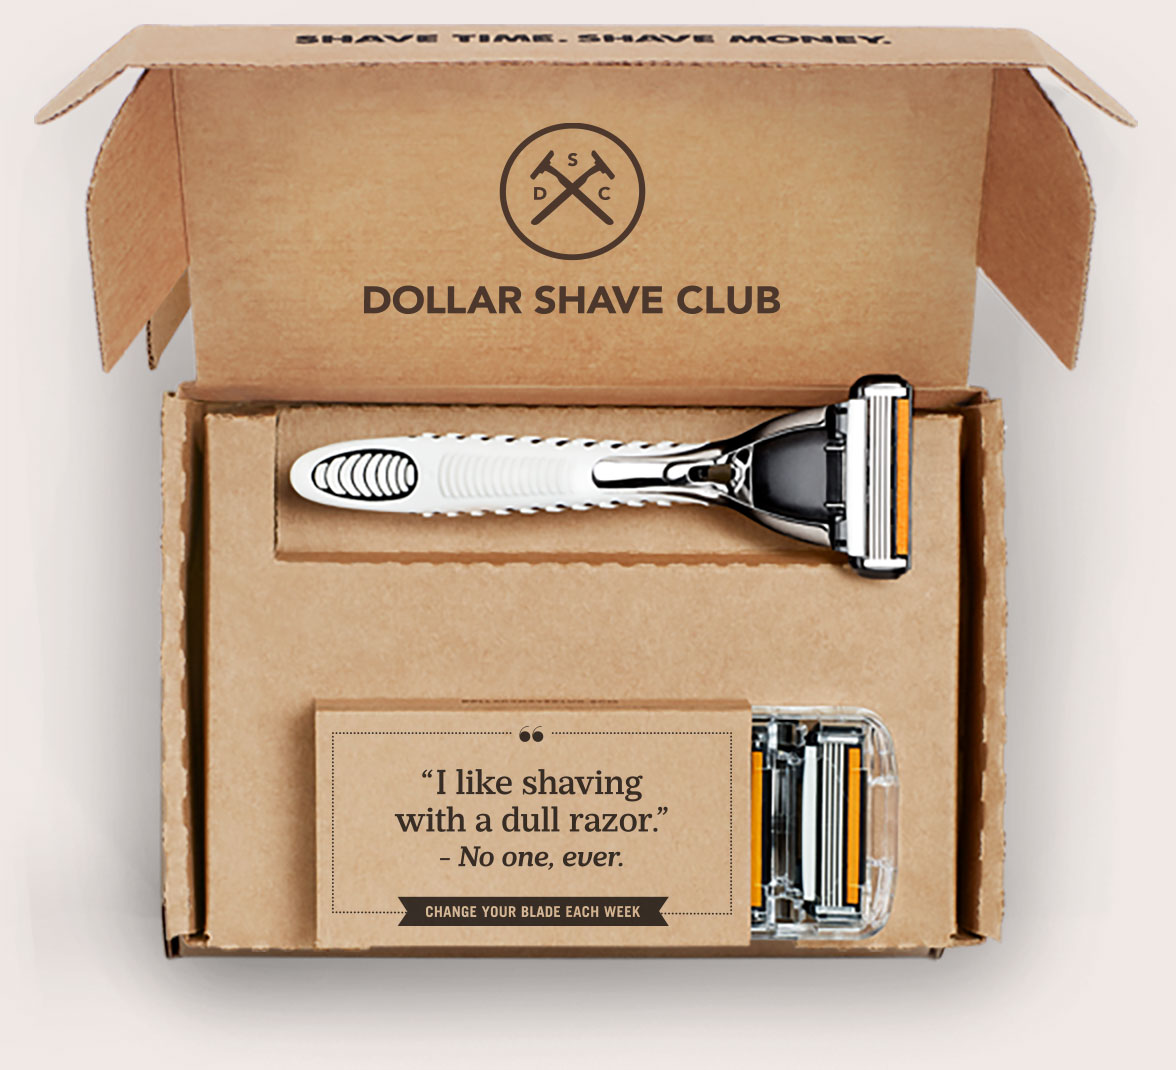 innovation-dollar-shave-club